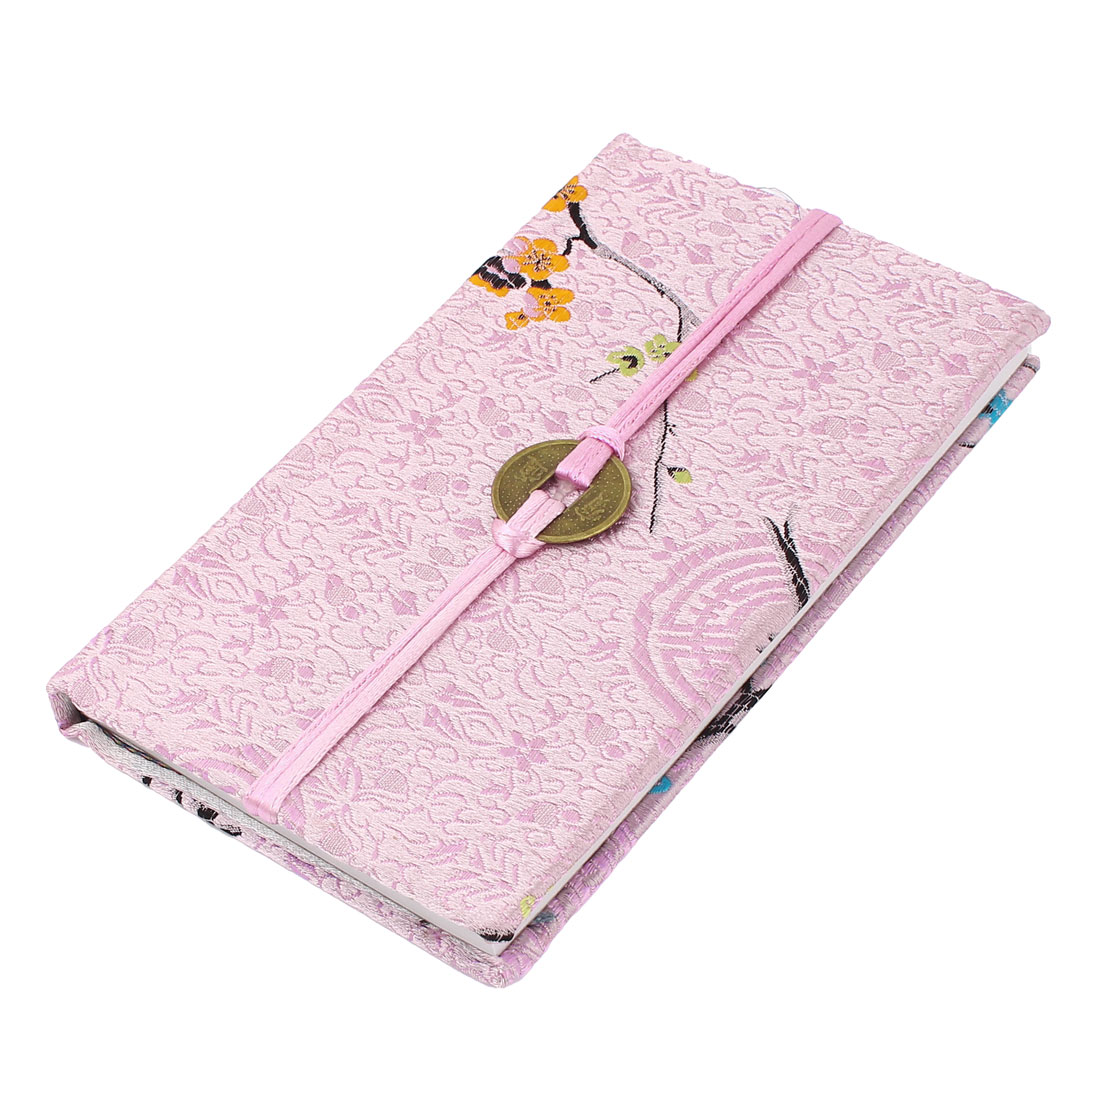 Embroidery Plum Blossom Pattern Nylon Coated Copper Coin String Decor Memo Book Notepad Pink